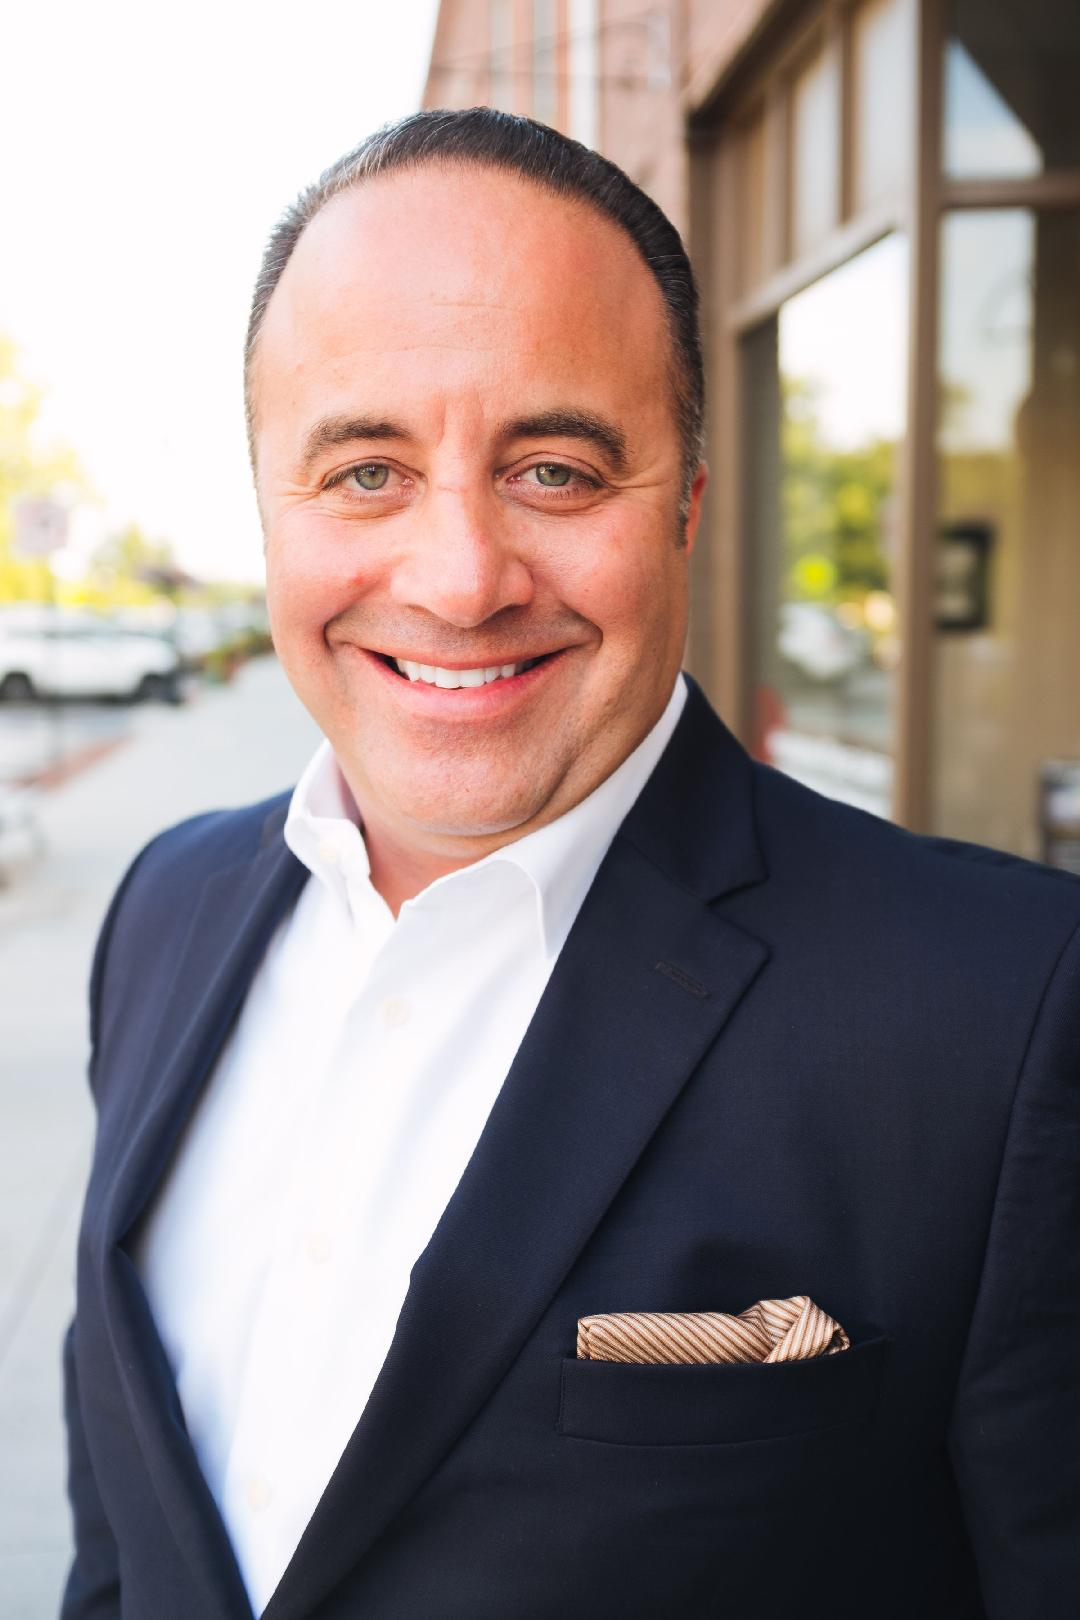 New CEO Announced for America's Beauty Show